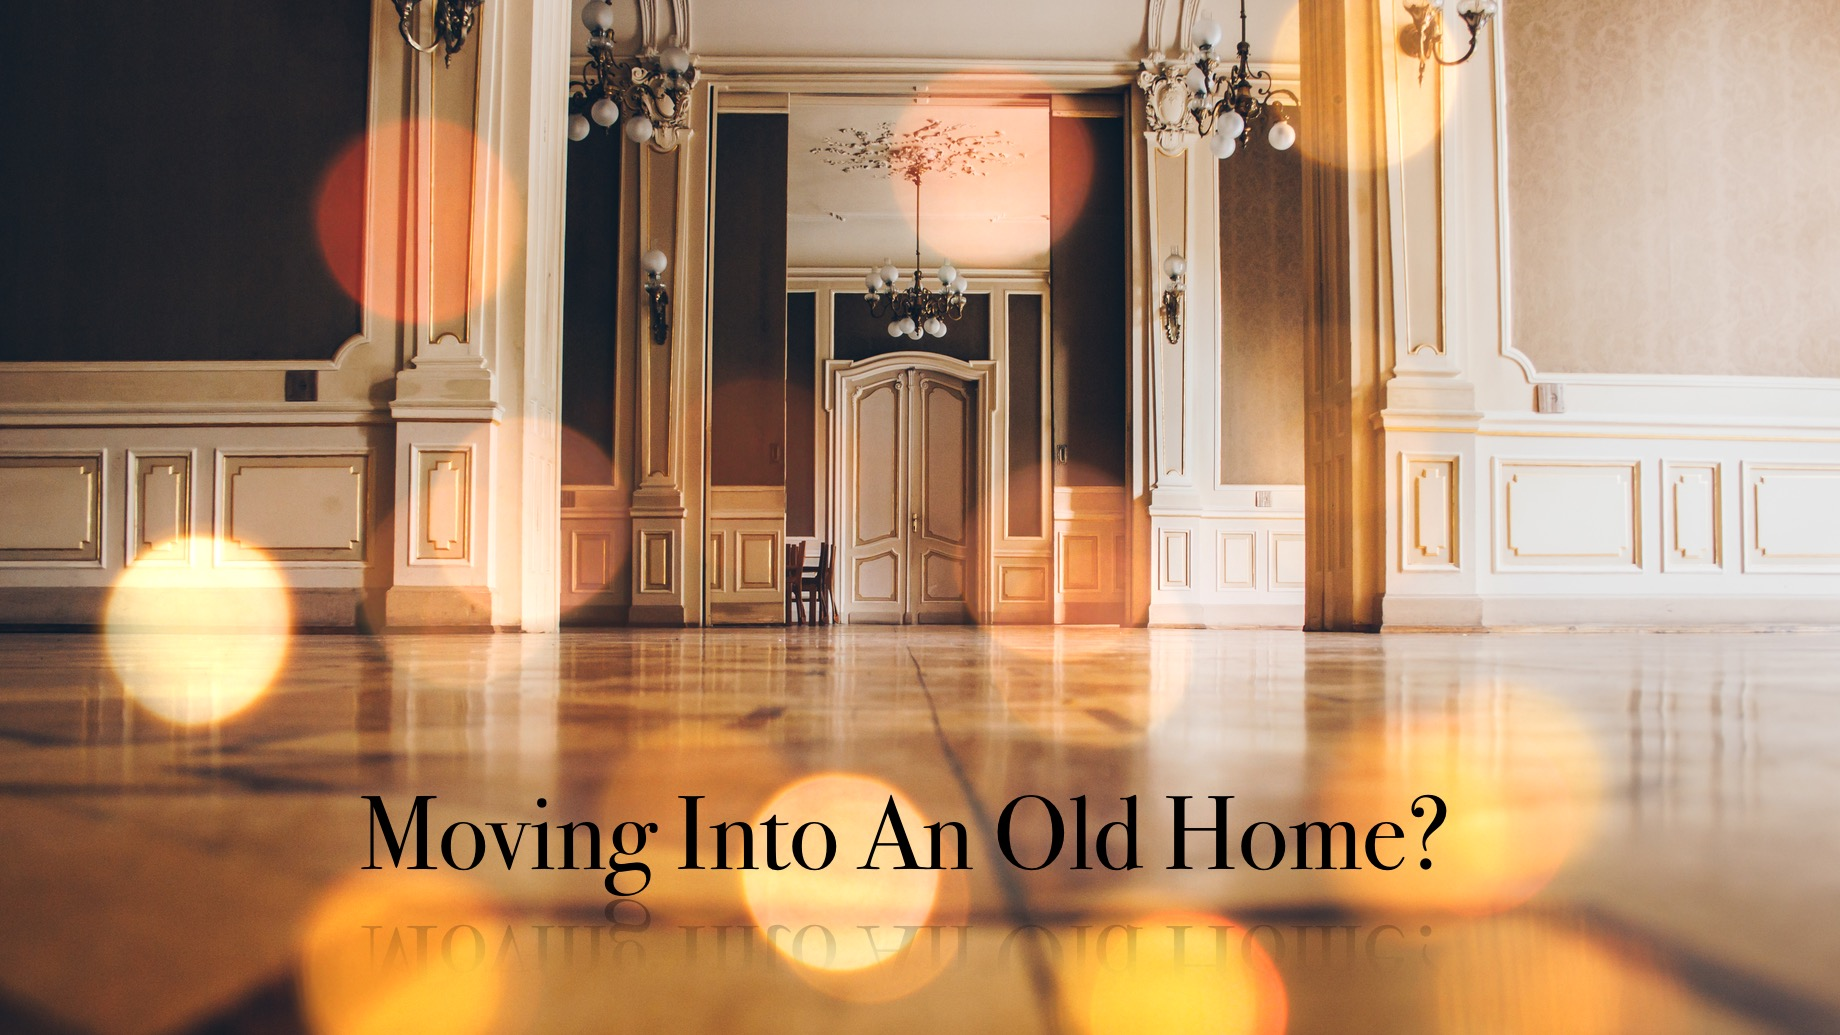 Moving Into An Old Home